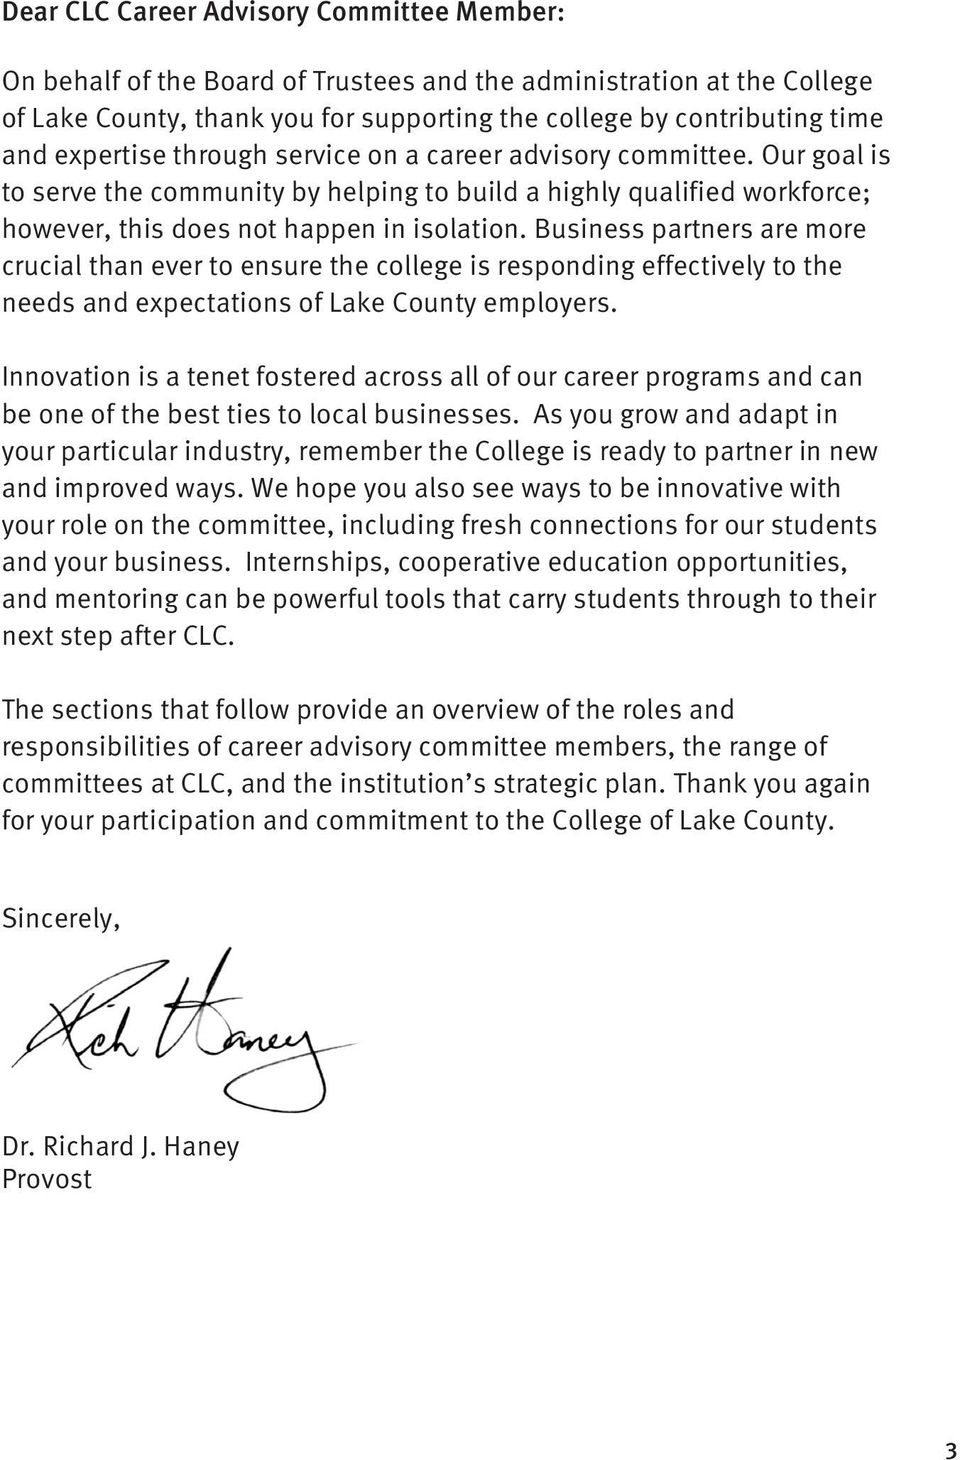 Business partners are more crucial than ever to ensure the college is responding effectively to the needs and expectations of Lake County employers.